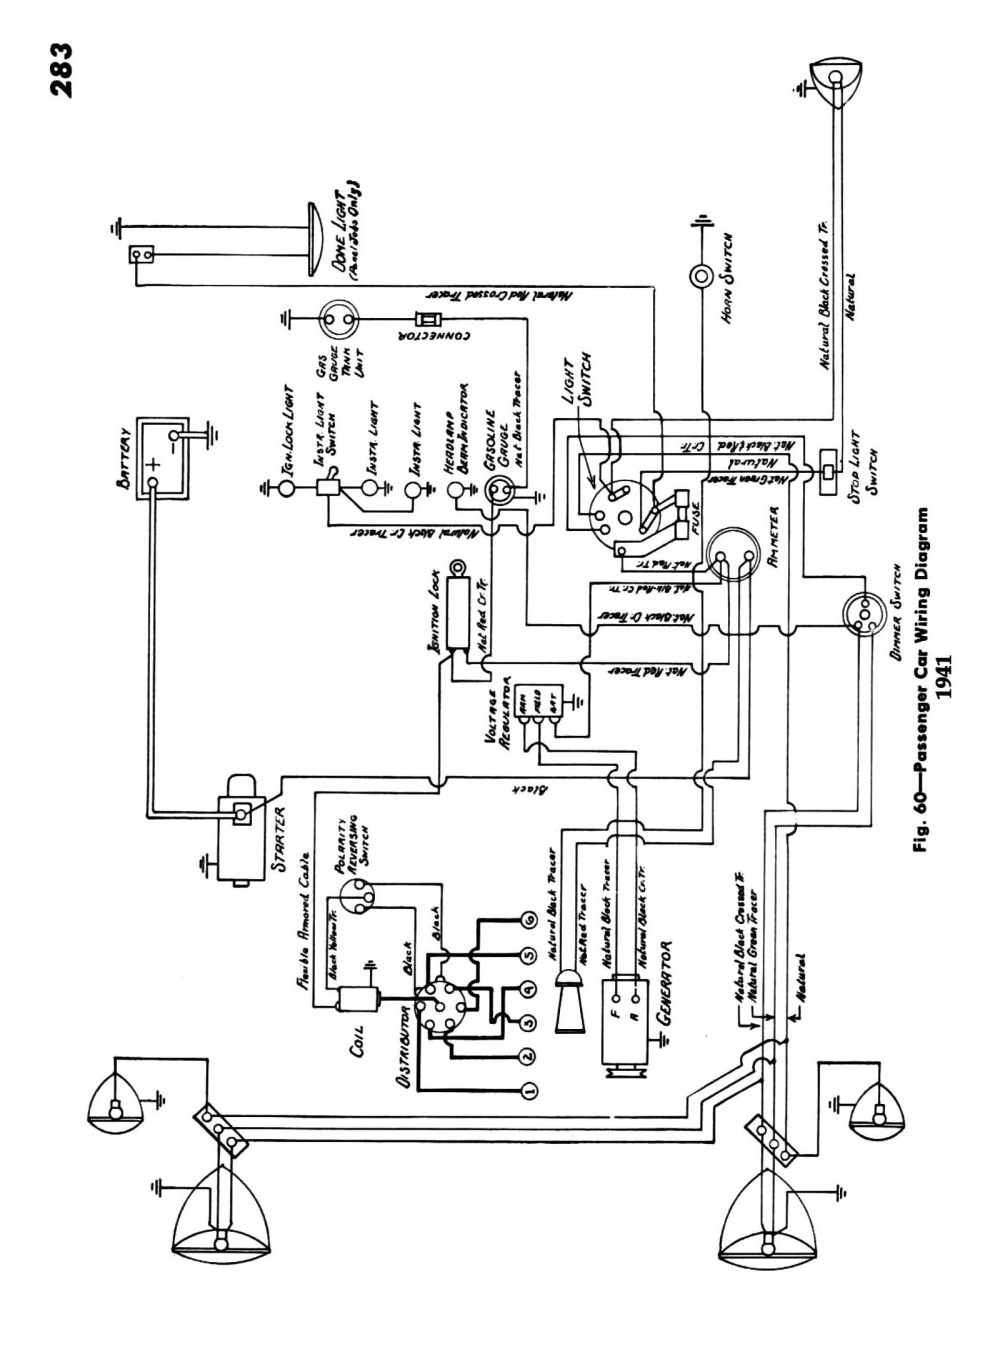 medium resolution of chevy wiring diagrams gm ecm wiring diagram vin 1941 passenger car wiring